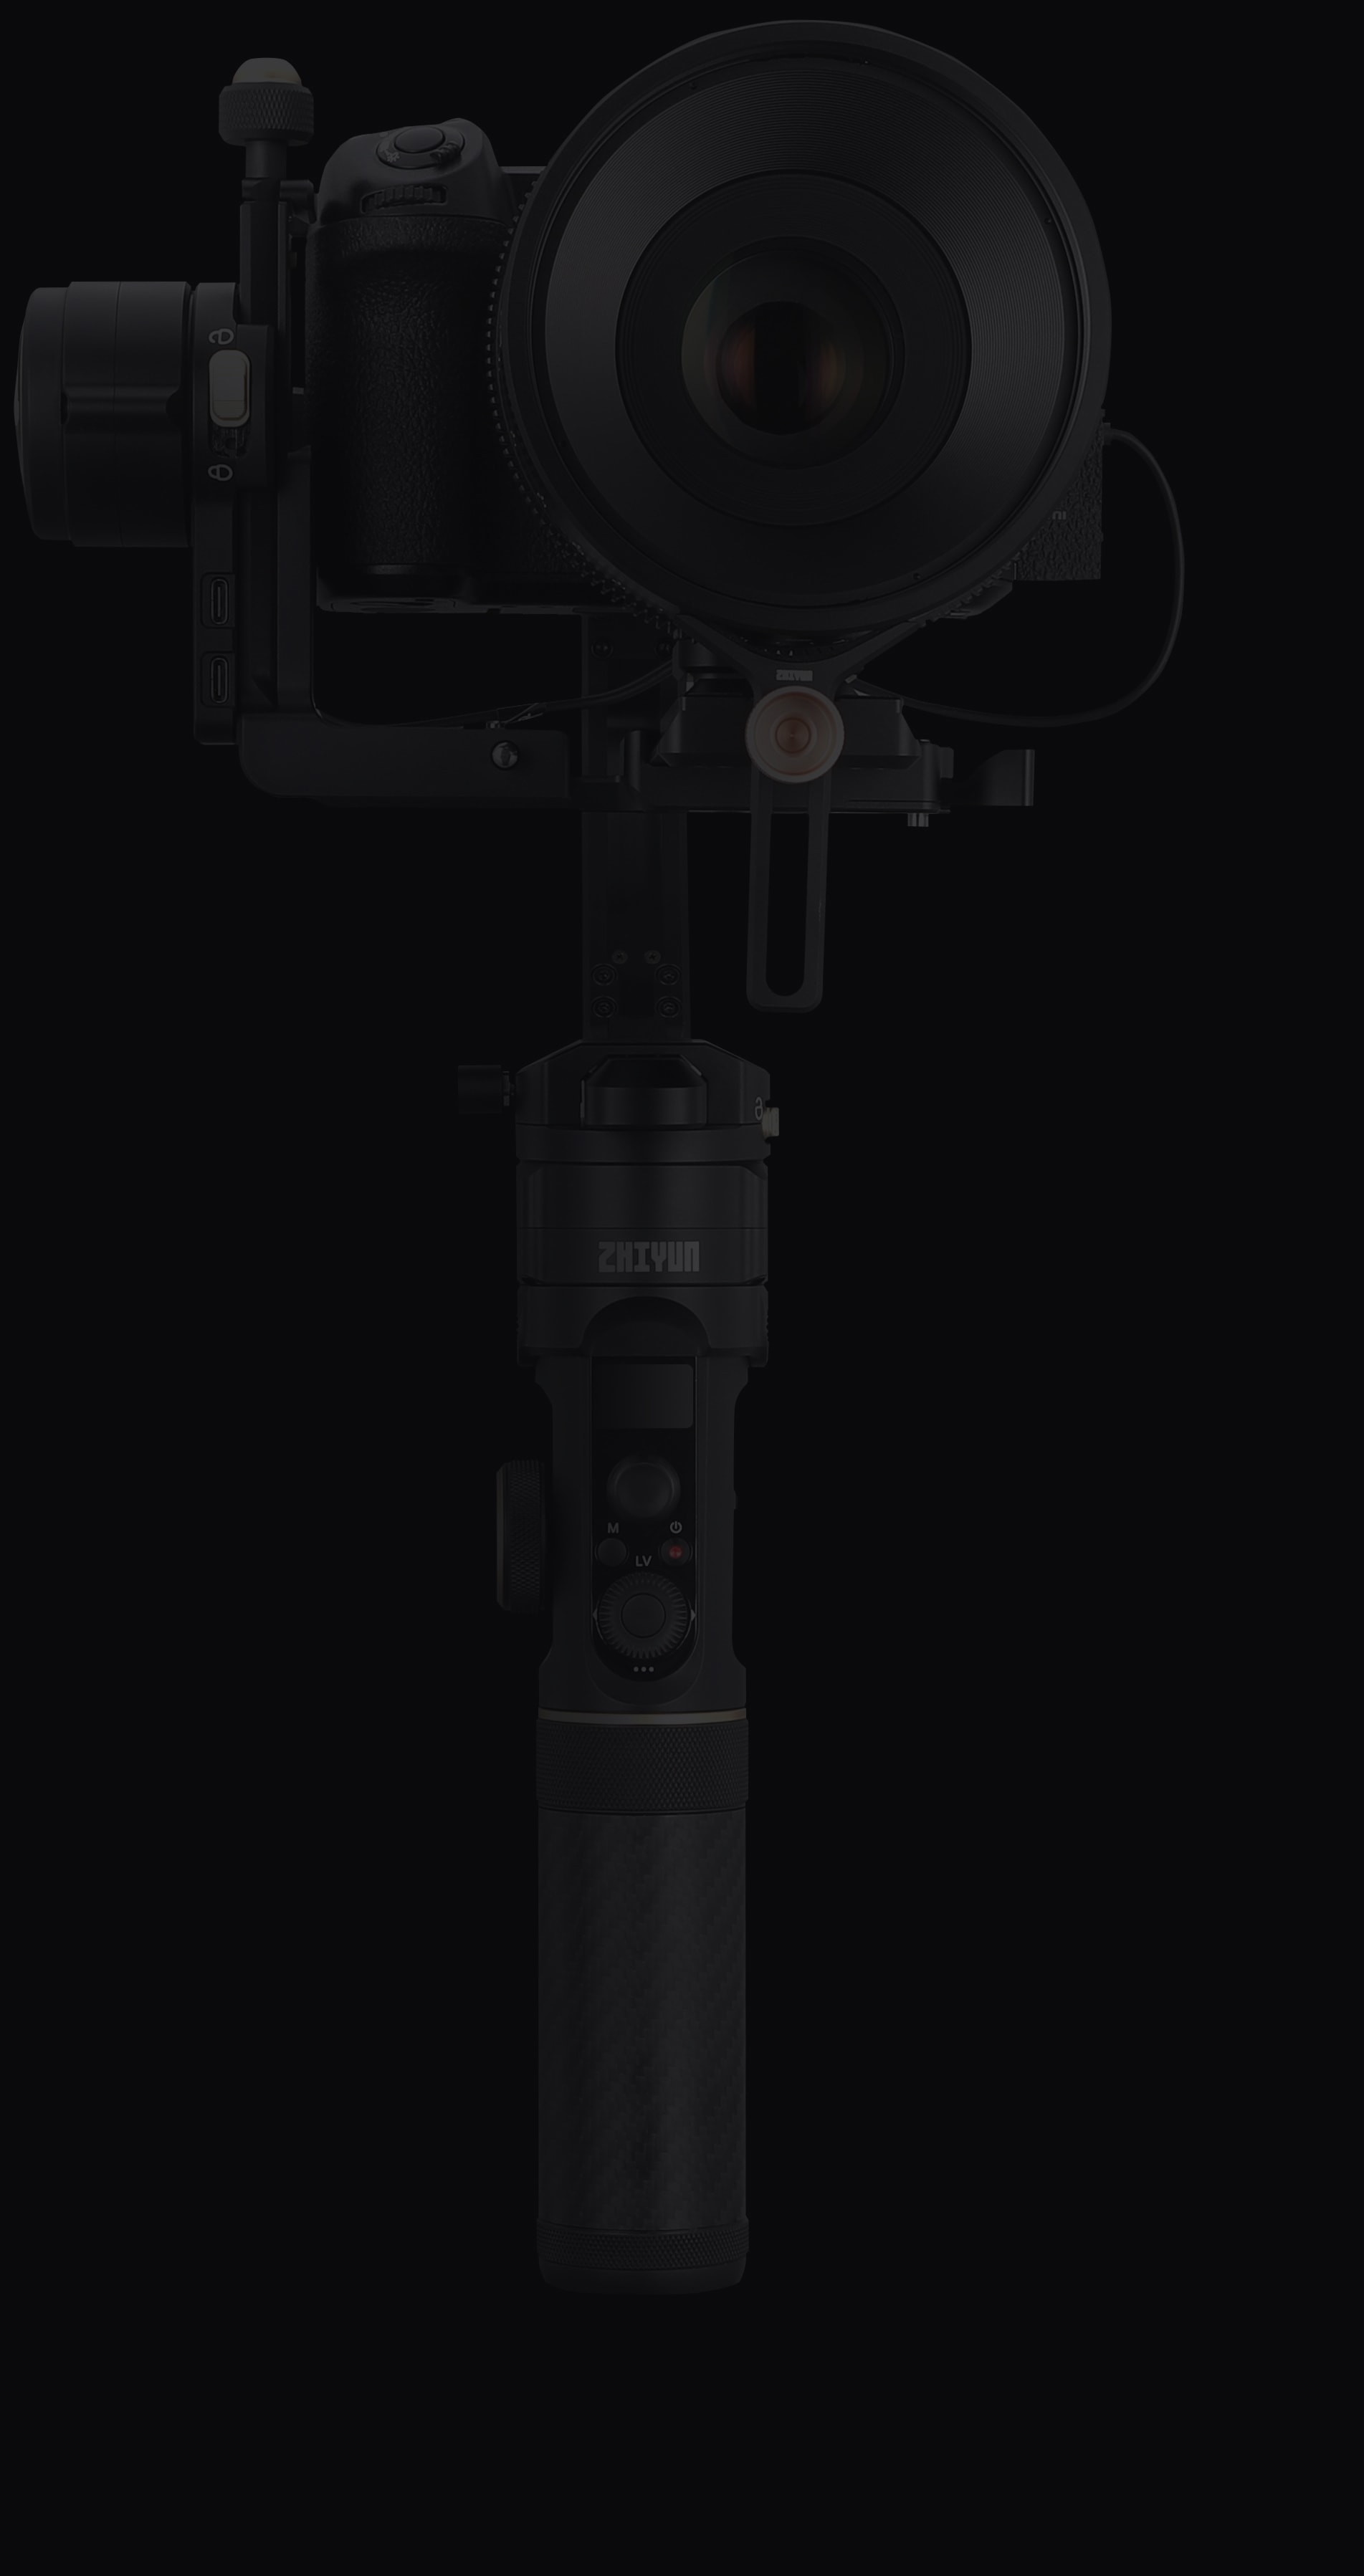 Crane 2S handheld camera stabilizer